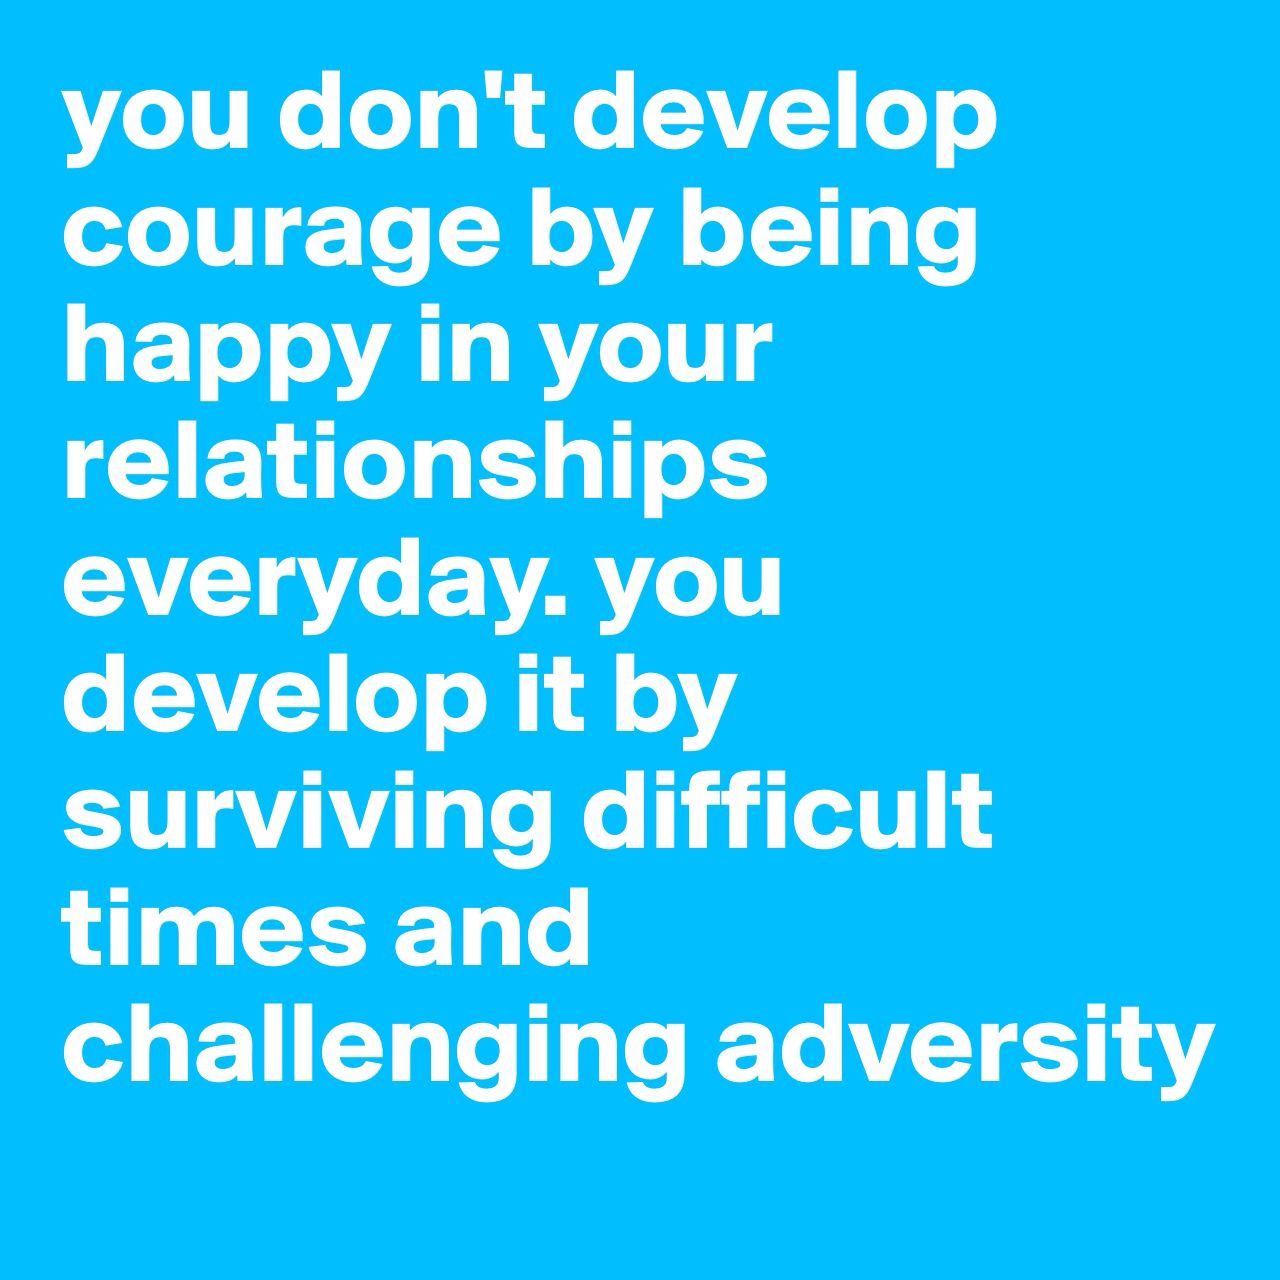 Quotes About Being Happy You Don't Develop Couragebeing Happy In Your Relationship